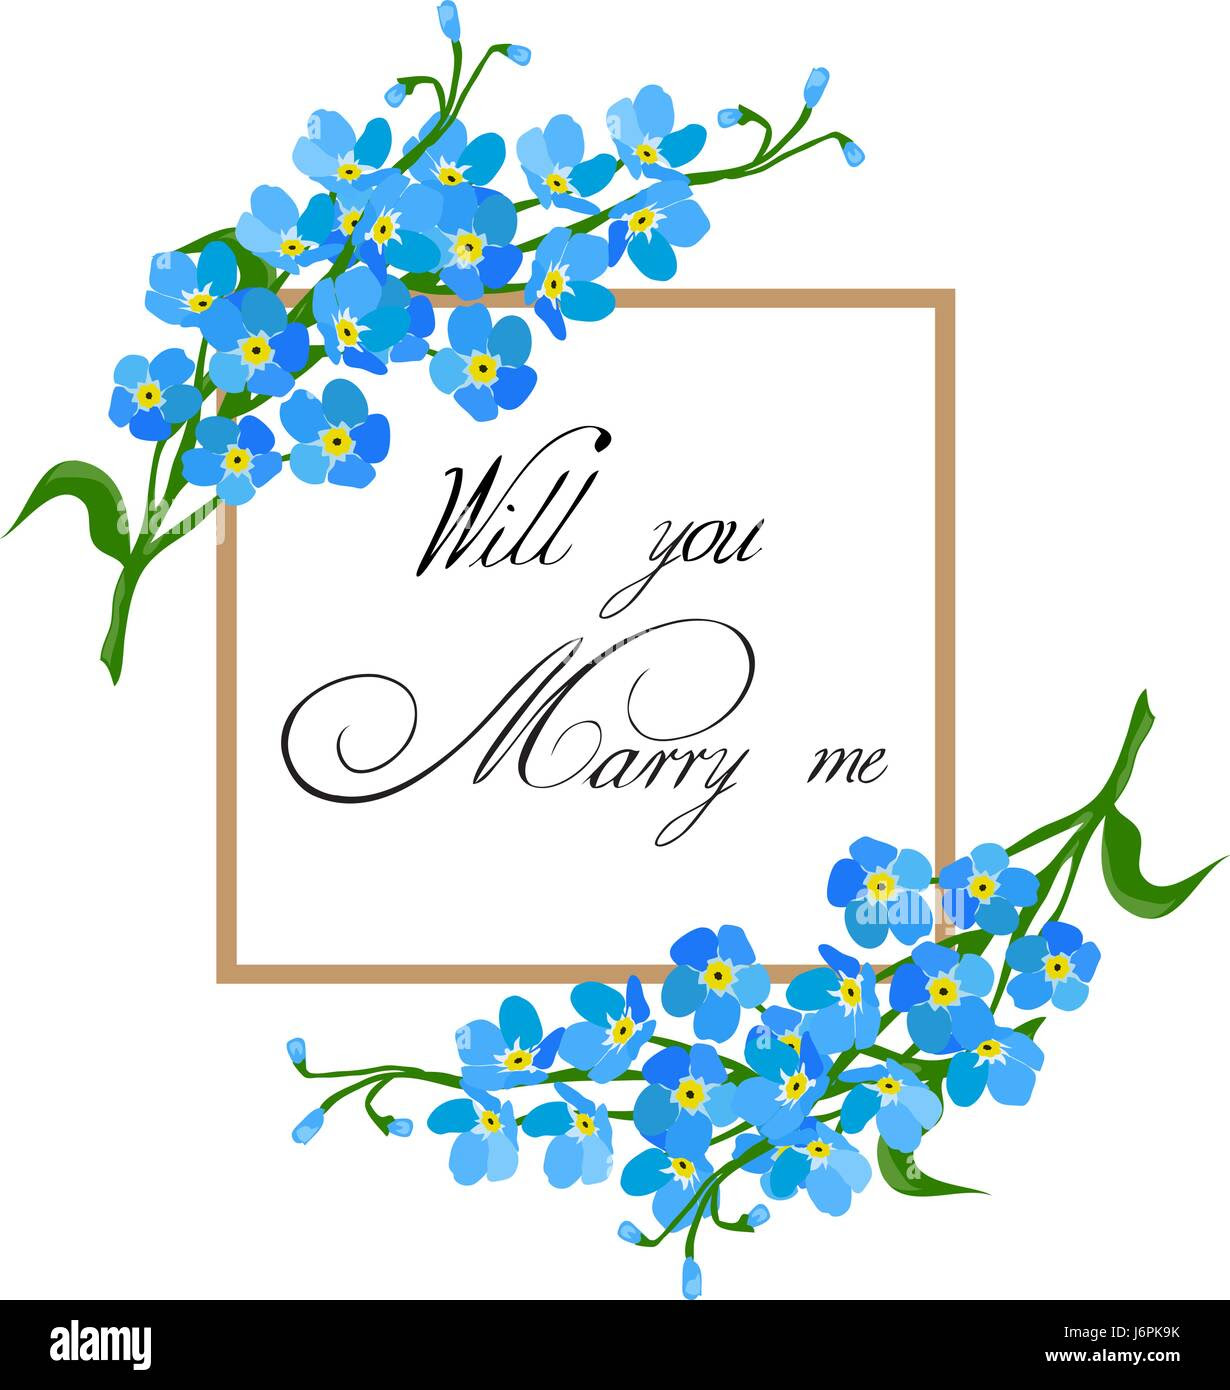 Vector Illustration Of A Floral Frame Will You Marry Me Card Stock